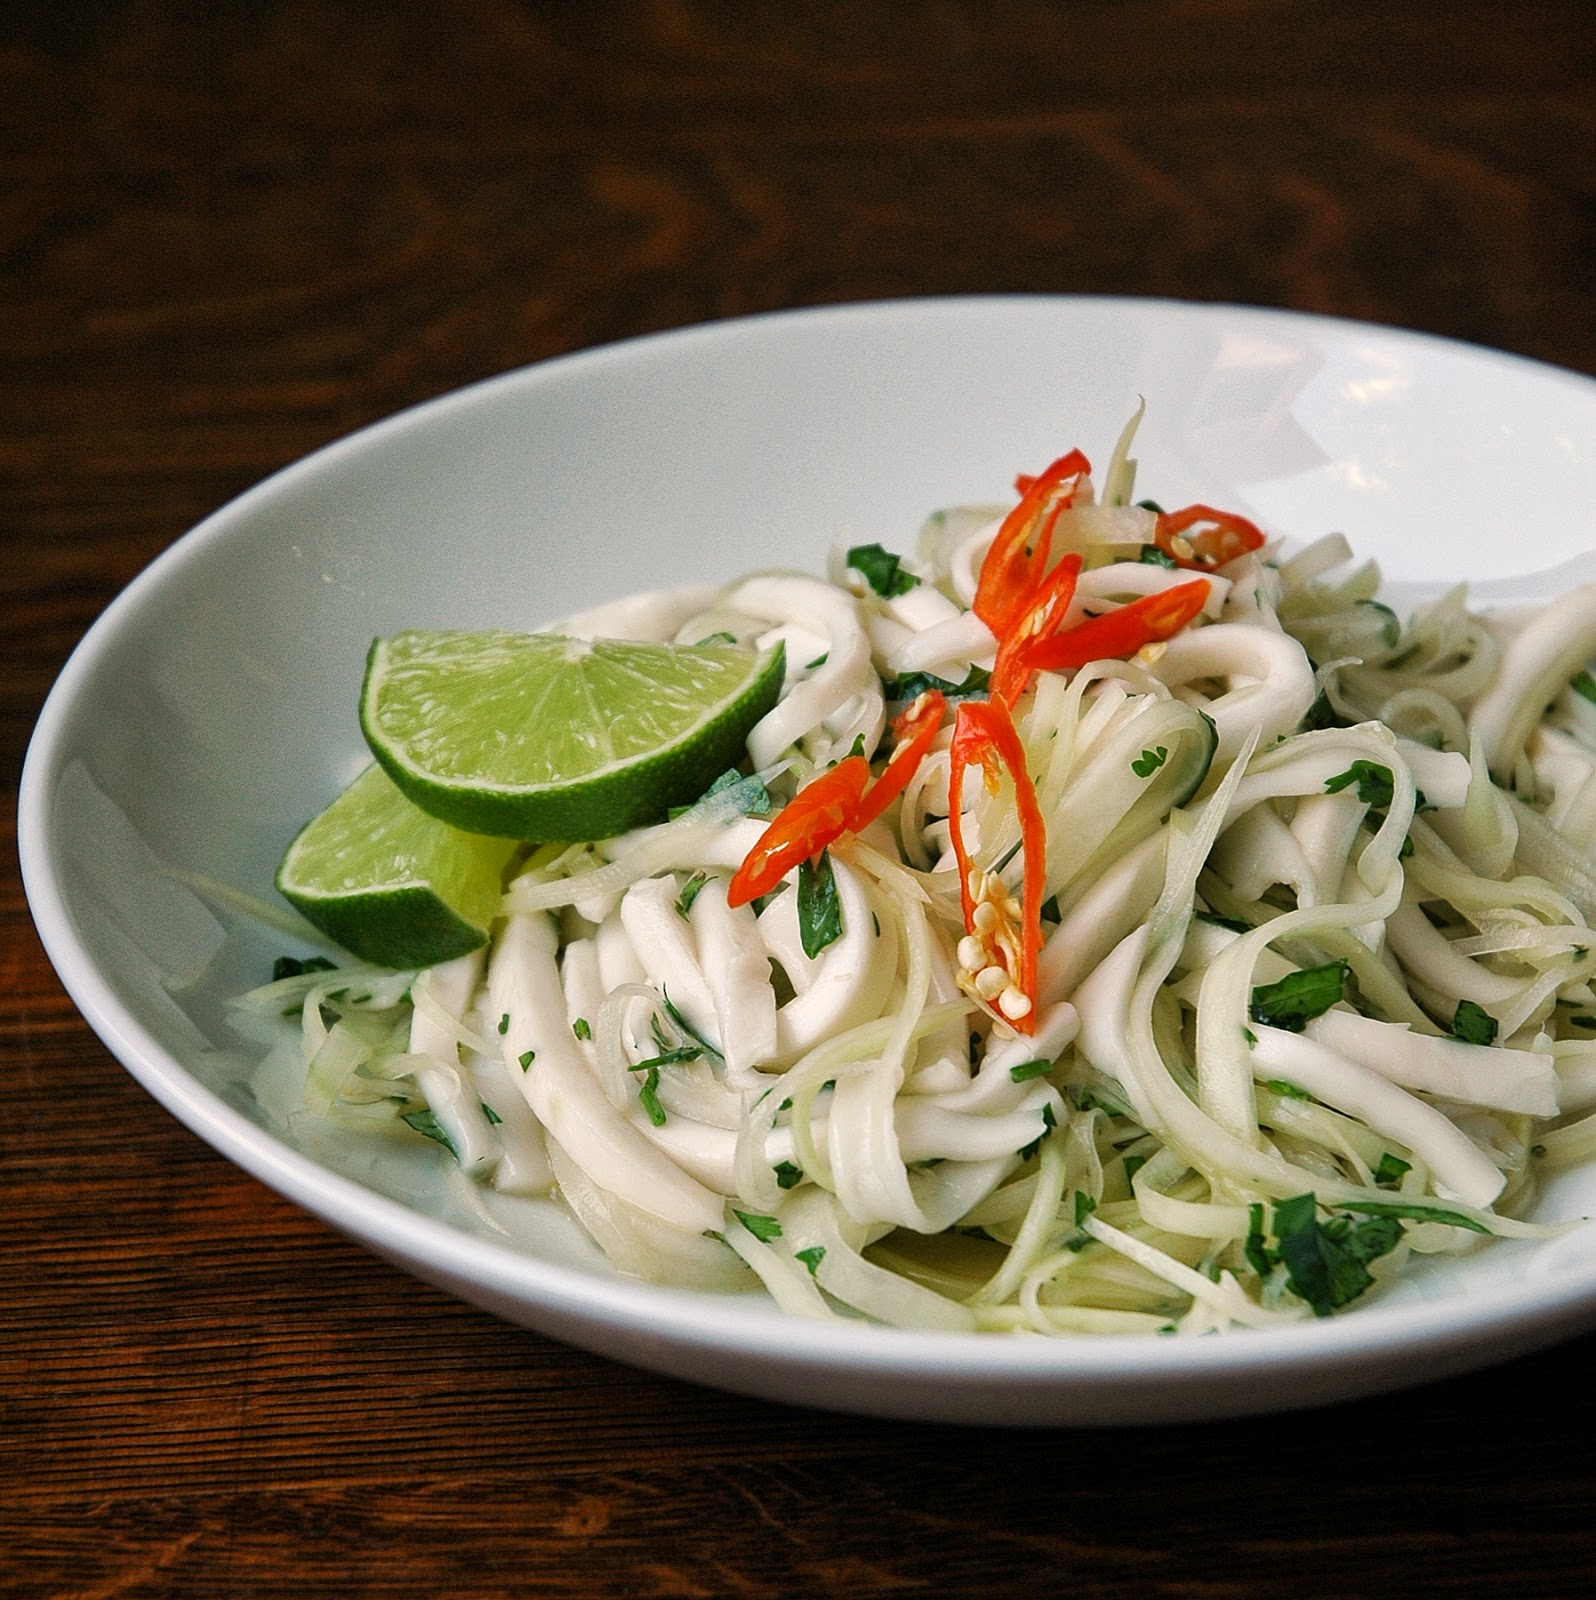 Green Papaya & Young Coconut Salad - Simply Jullie and Chelsea